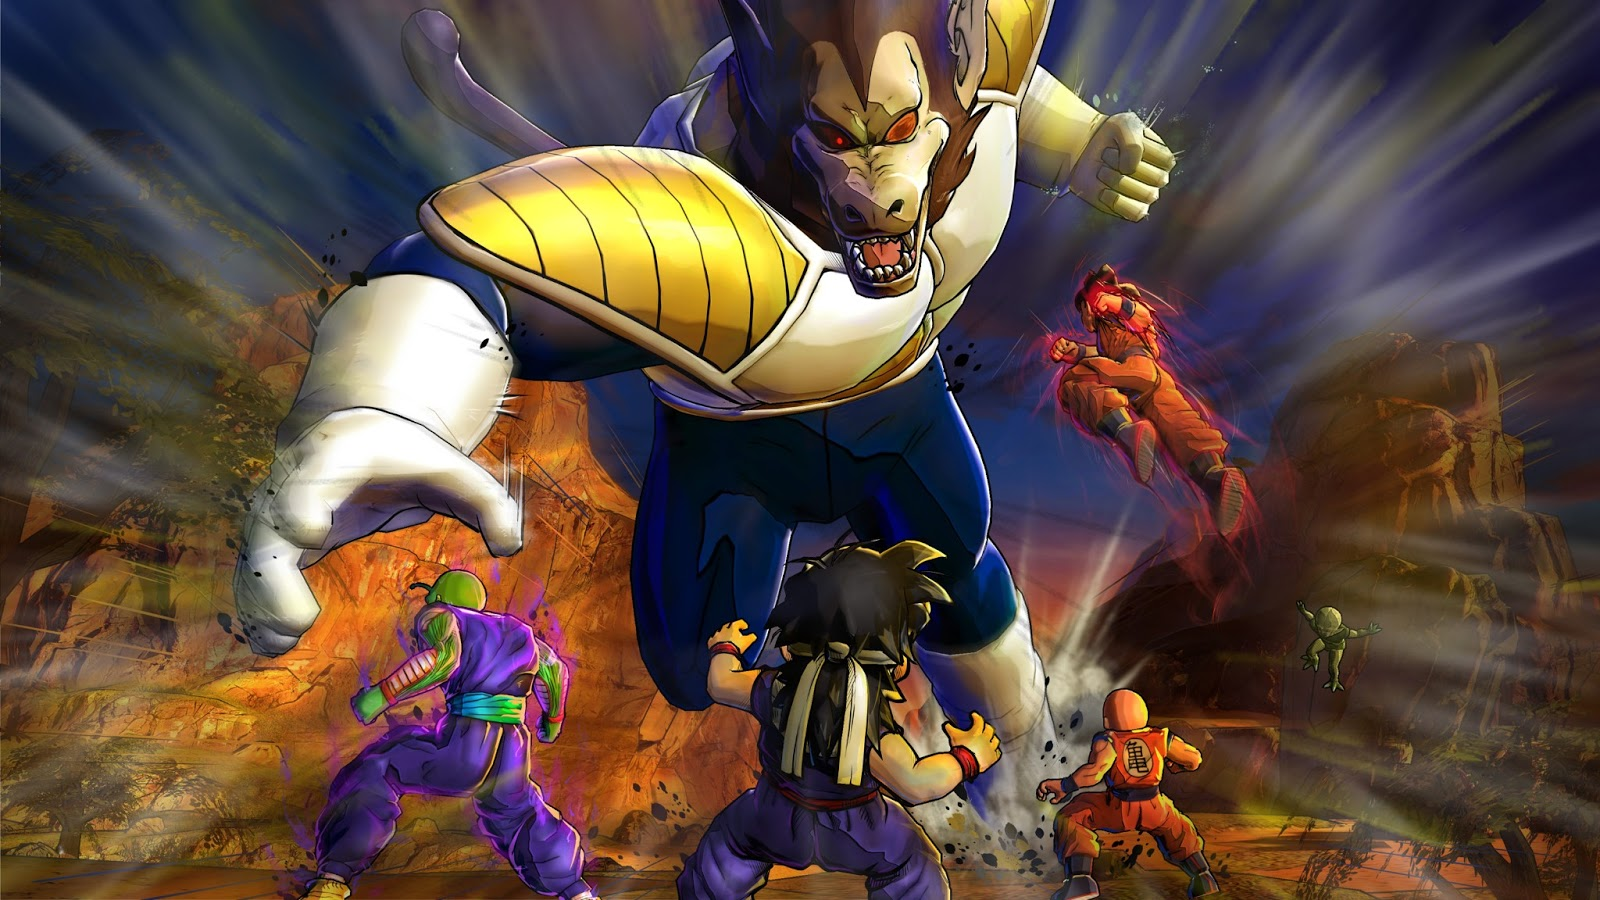 dragon ball z: battle of z on its way to xbox 360, ps3, and ps vita